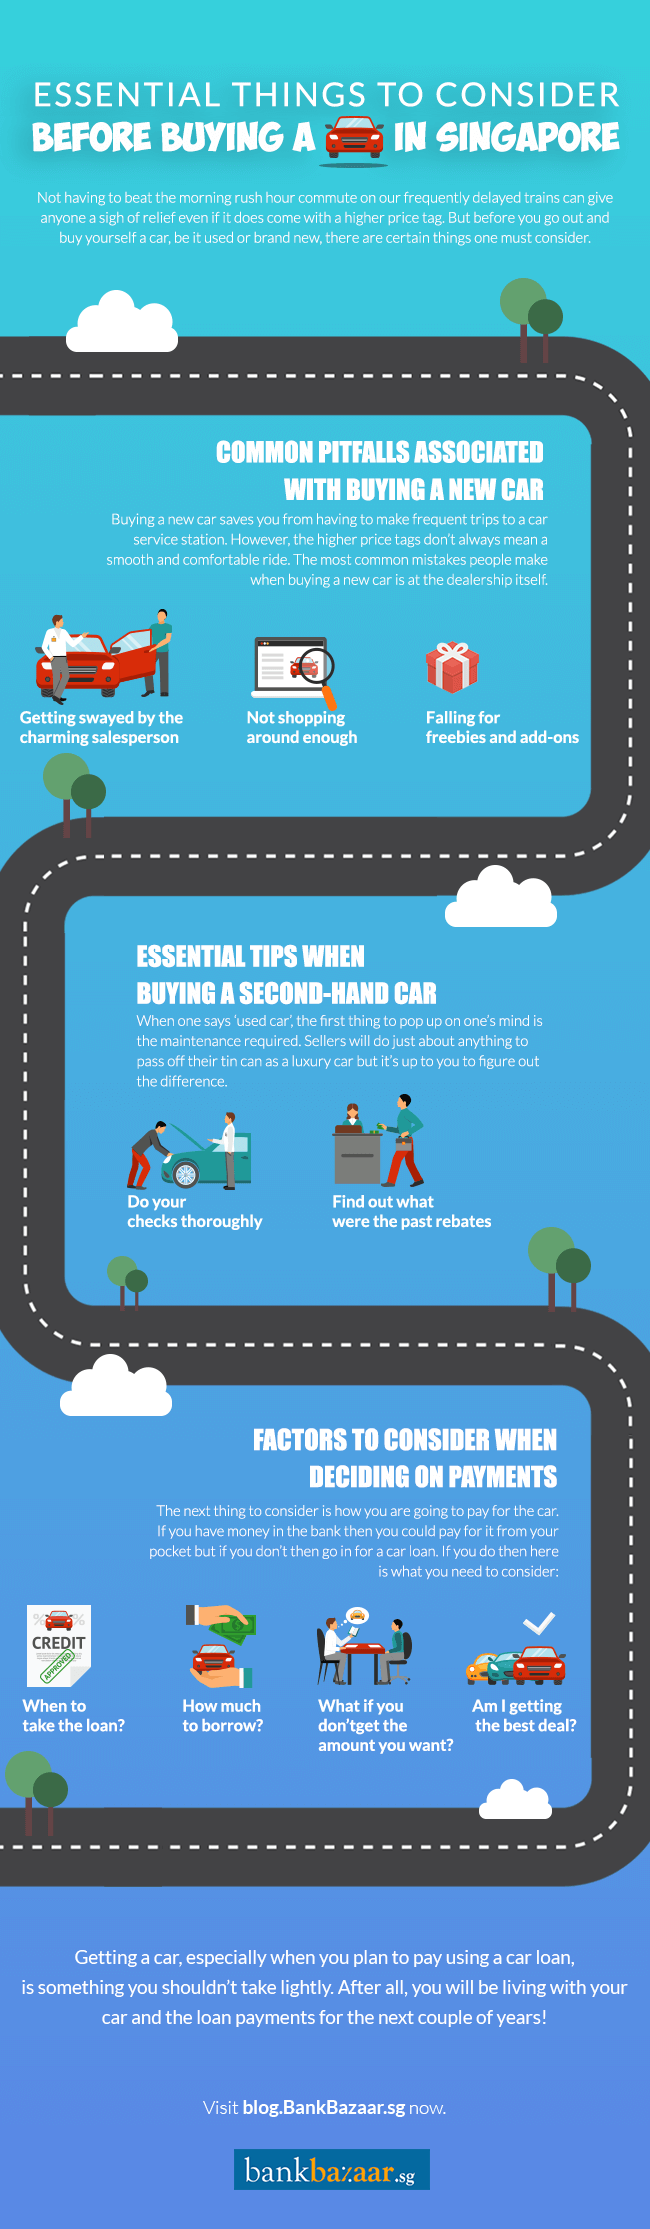 Essential Things to Consider Before Buying a Car in